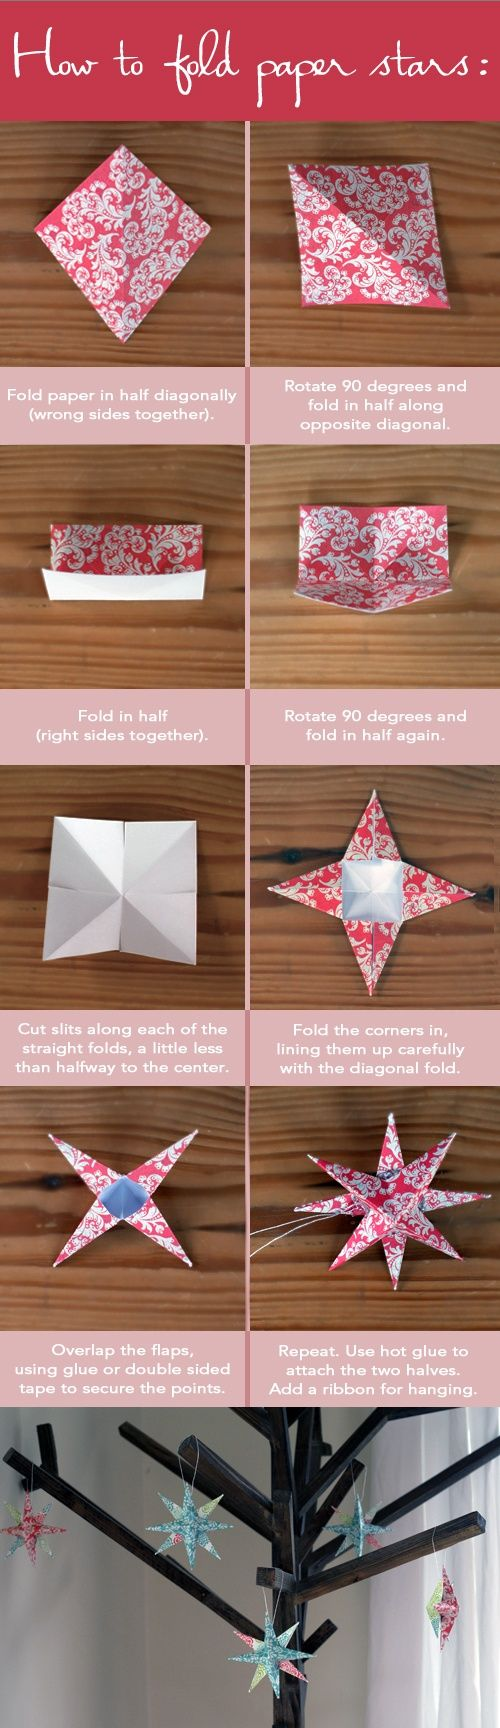 How to fold paper stars